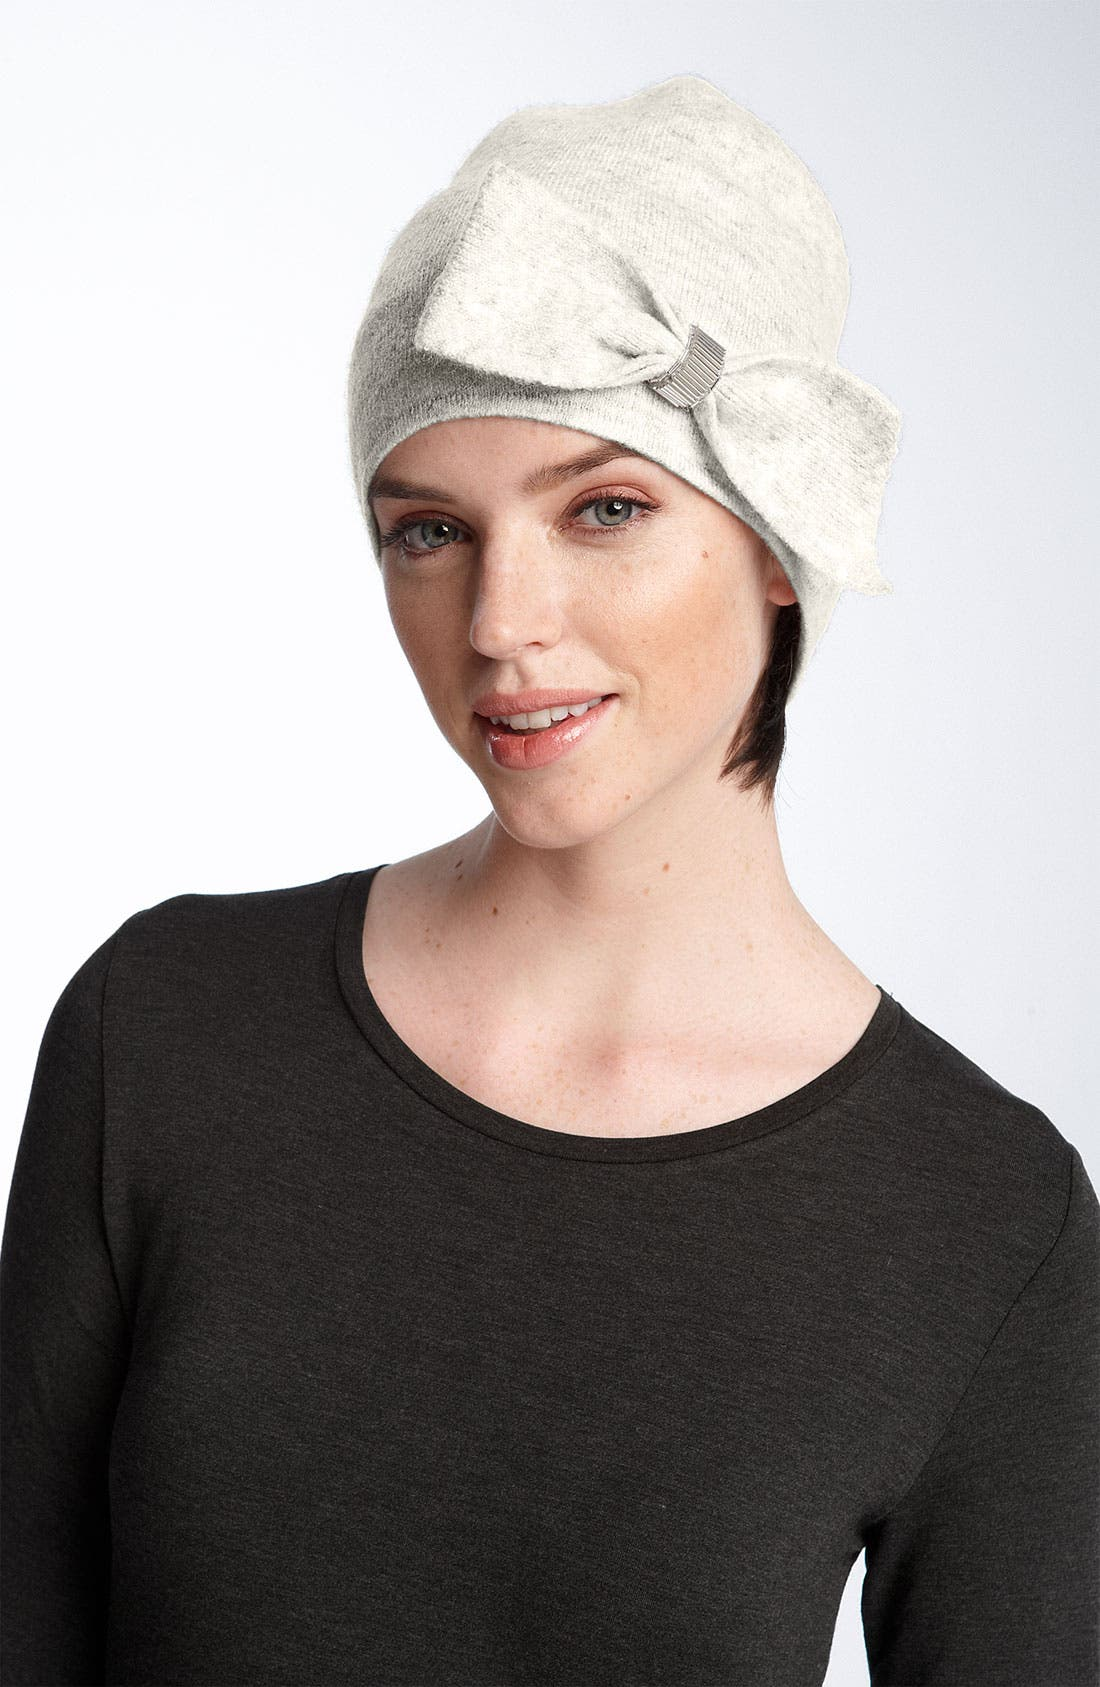 Alternate Image 1 Selected - Nordstrom 'Pretty Bow' Knit Cap